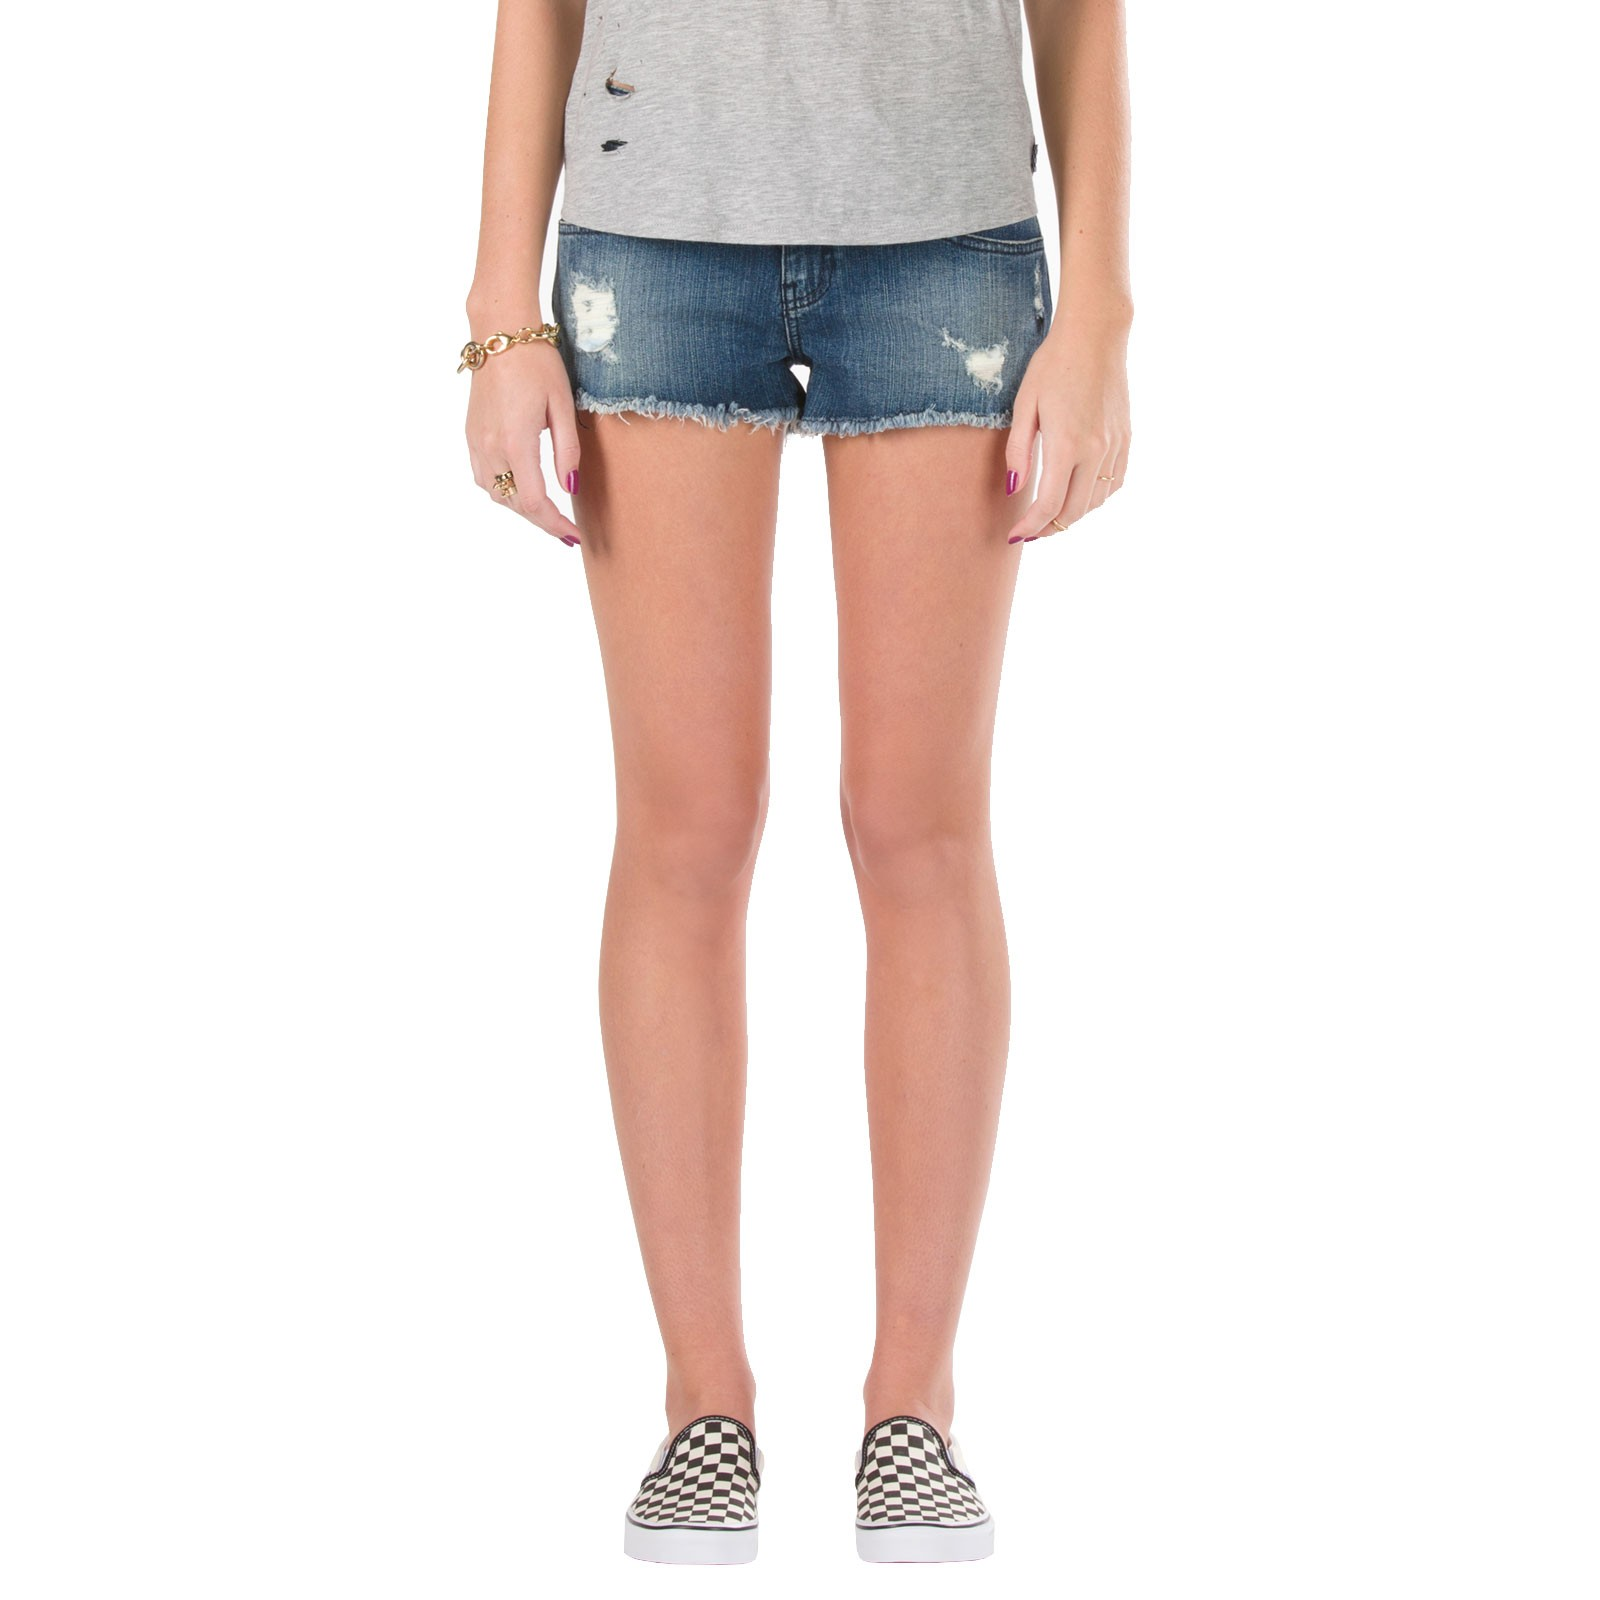 Vans Women's Destroyed Mini Jeans Shorts - Indigo Destroyed